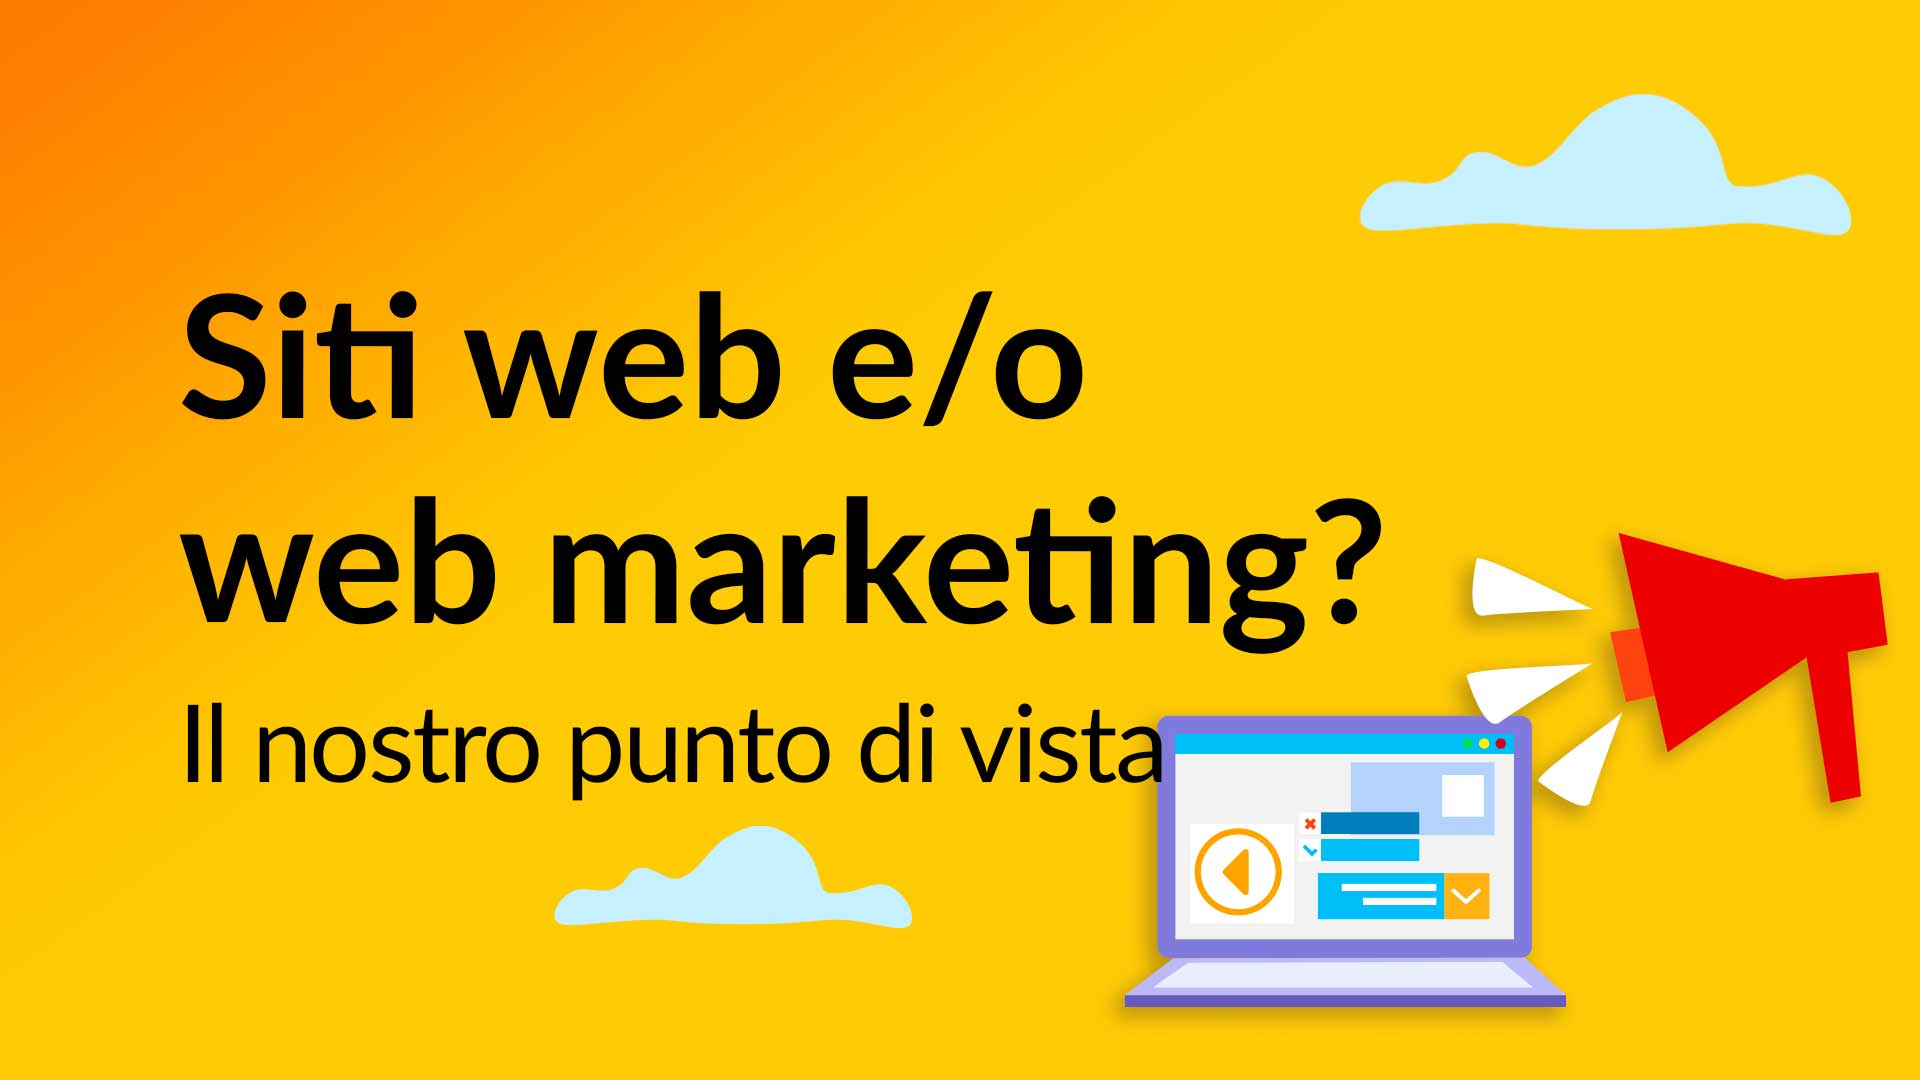 Siti web e/o web marketing?